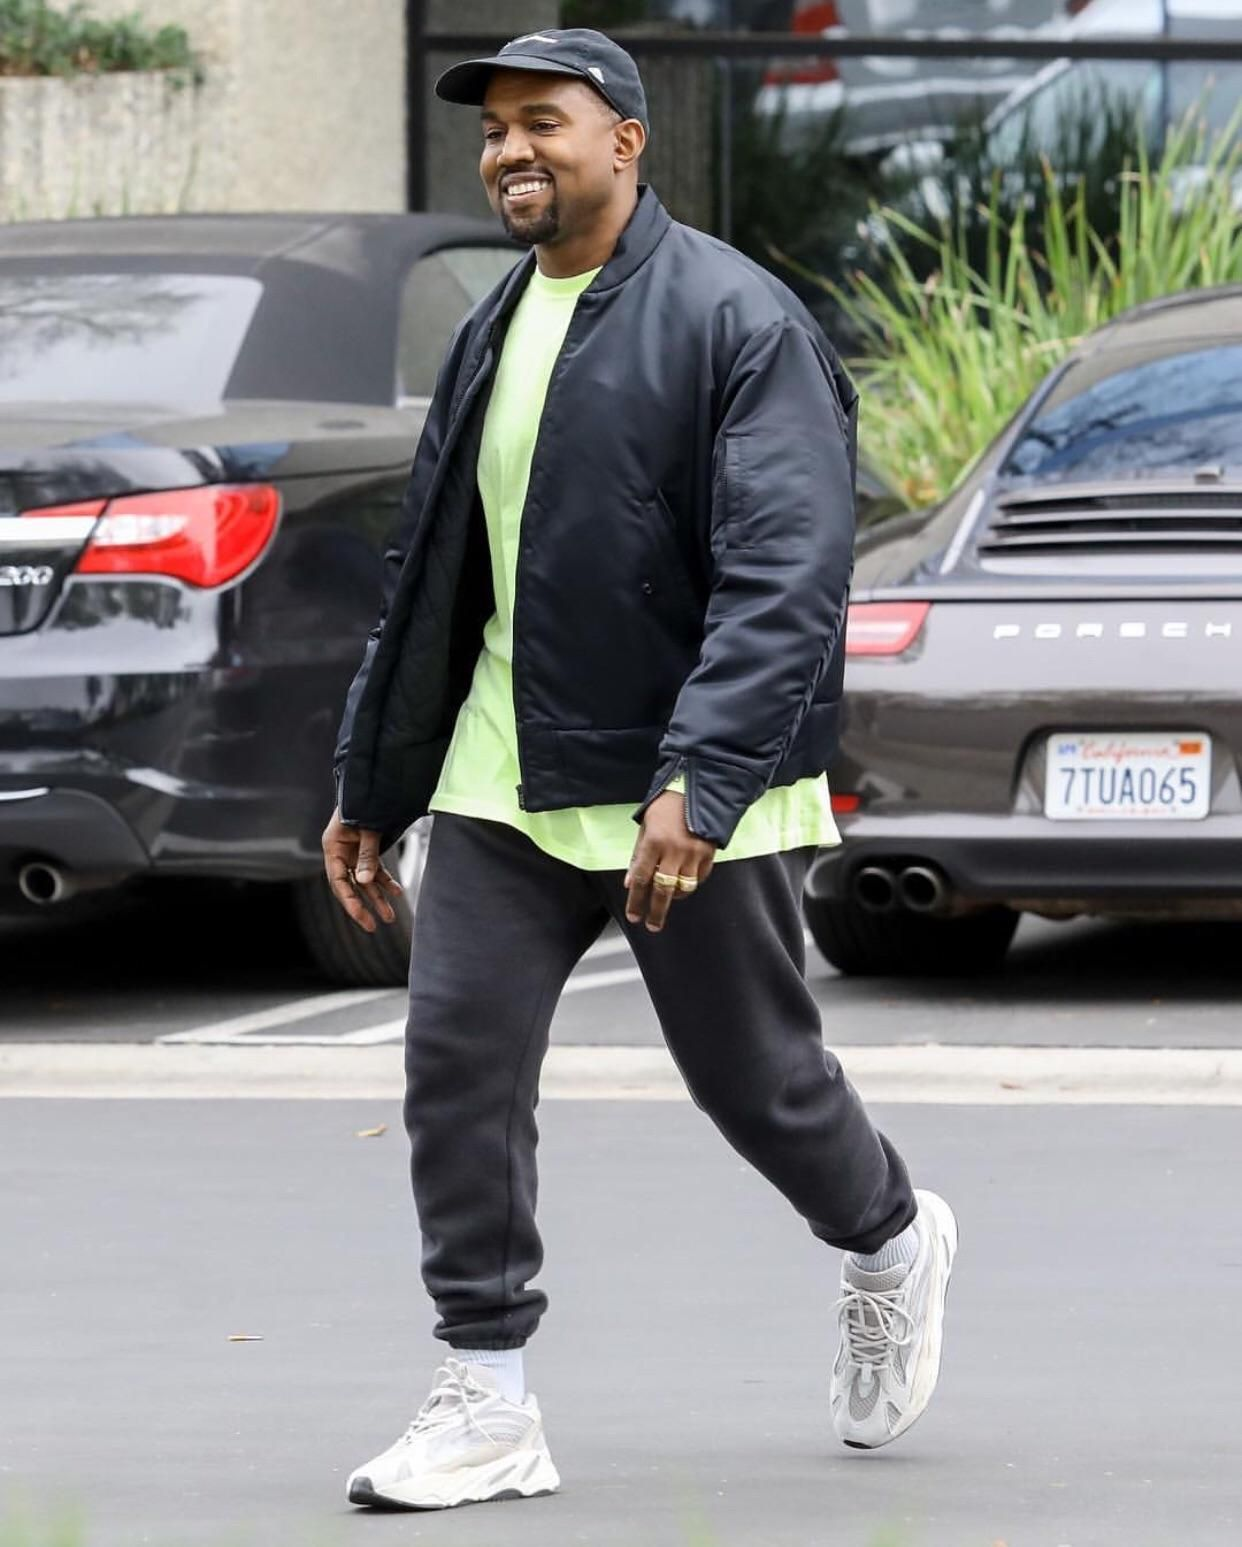 Pin by Zach Westhoff on Clothes | Kanye west outfits ...